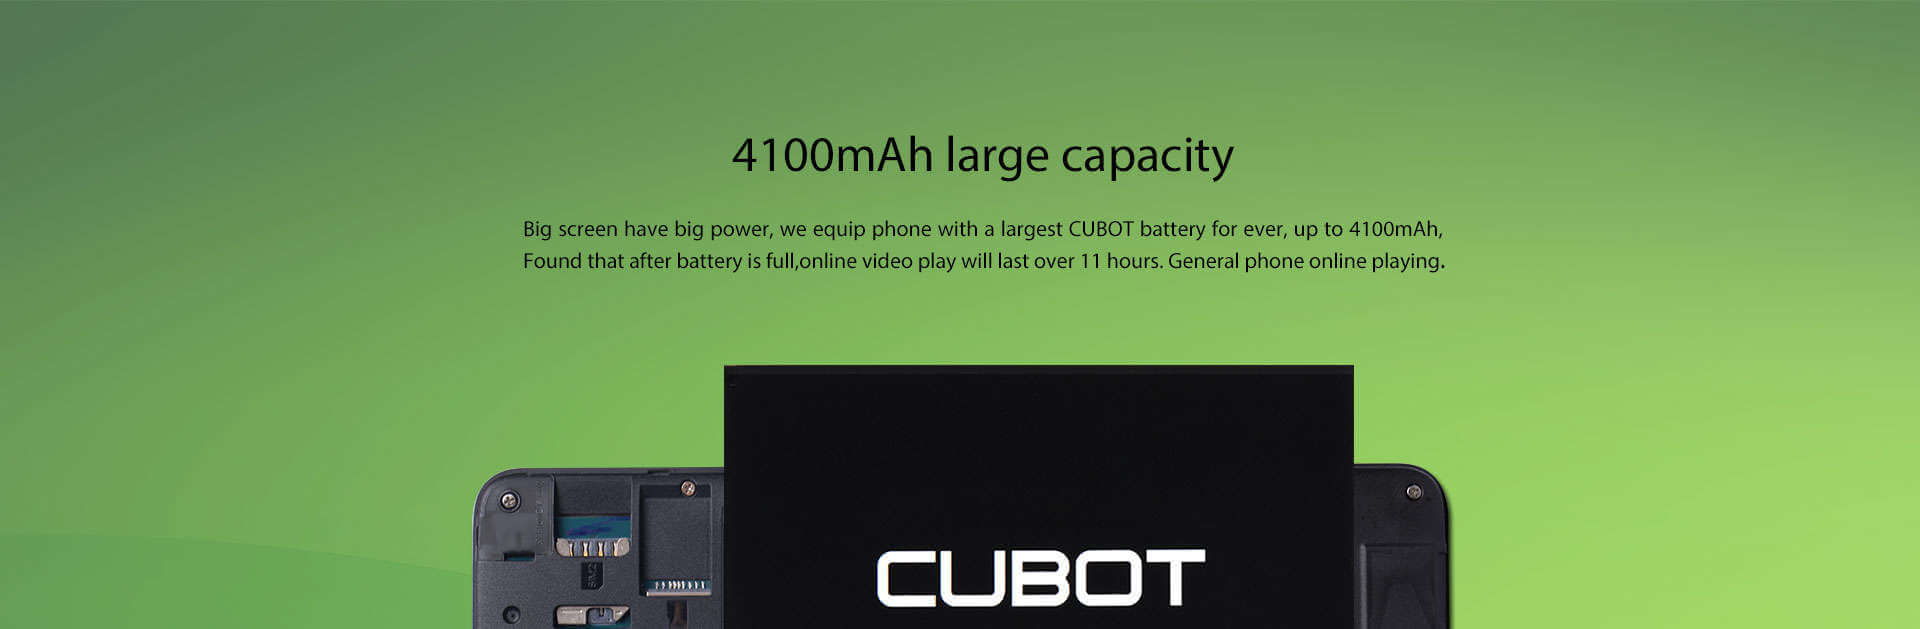 Cubot Max Battery